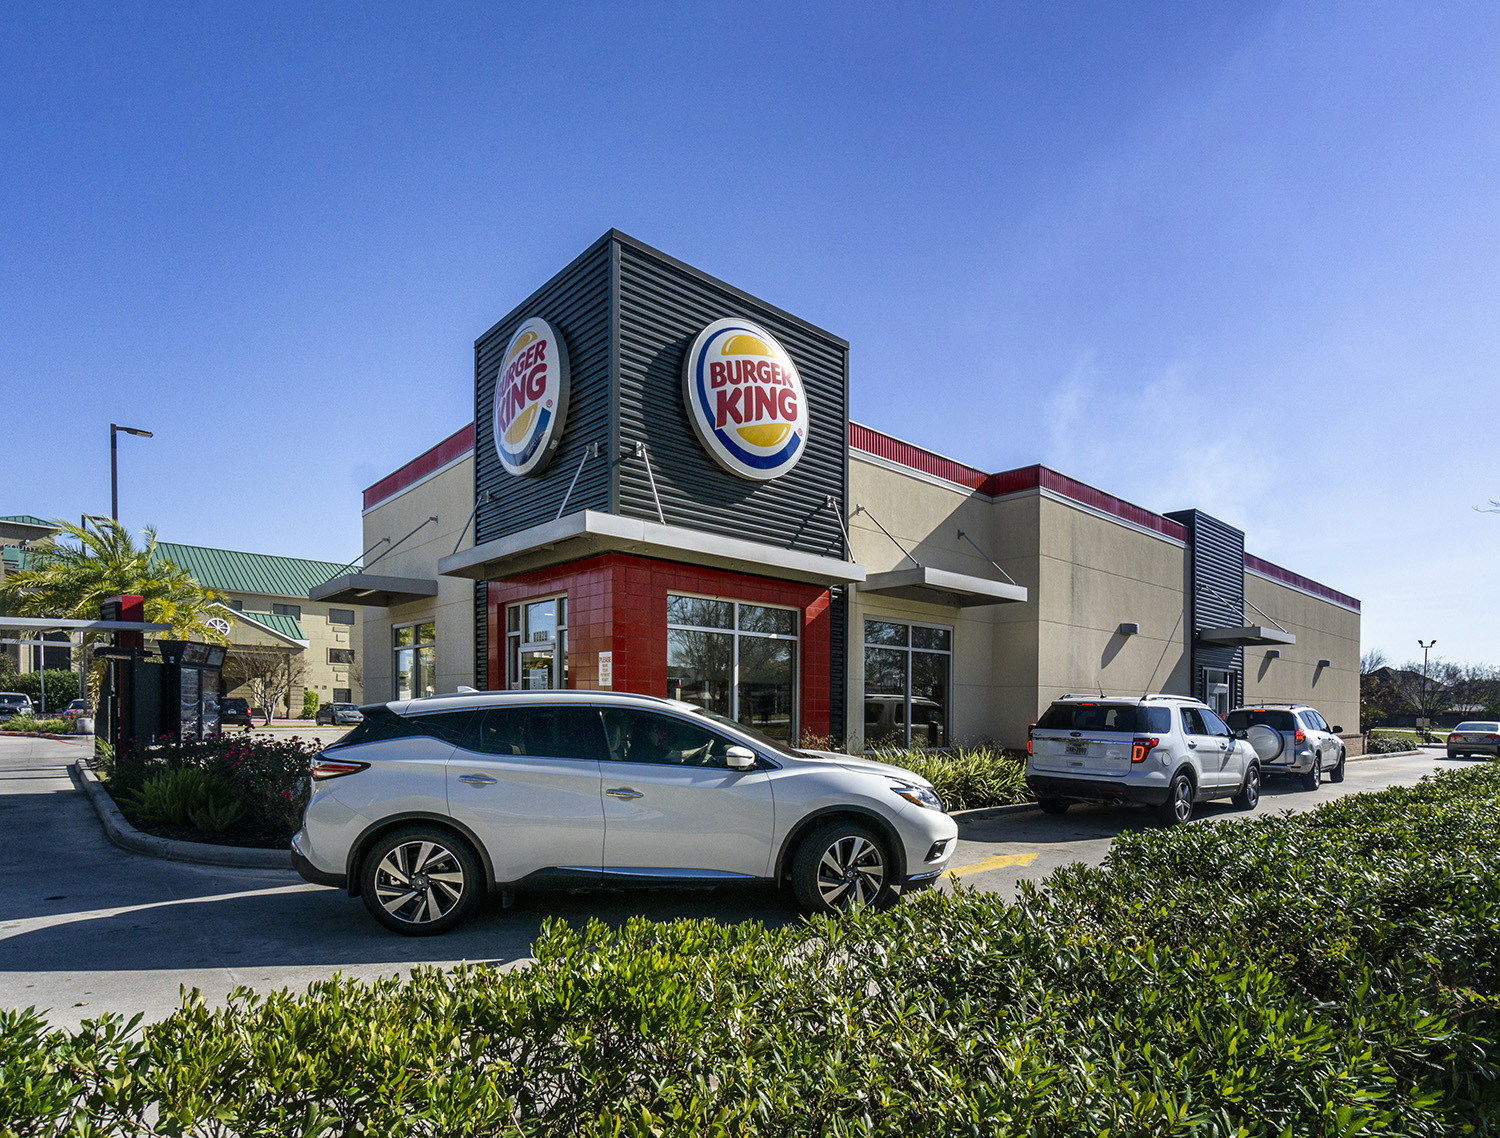 Hanley Investment Group Arranges Sale of New Single-Tenant Burger King Prototype with Double-Drive Thru in Houston 17